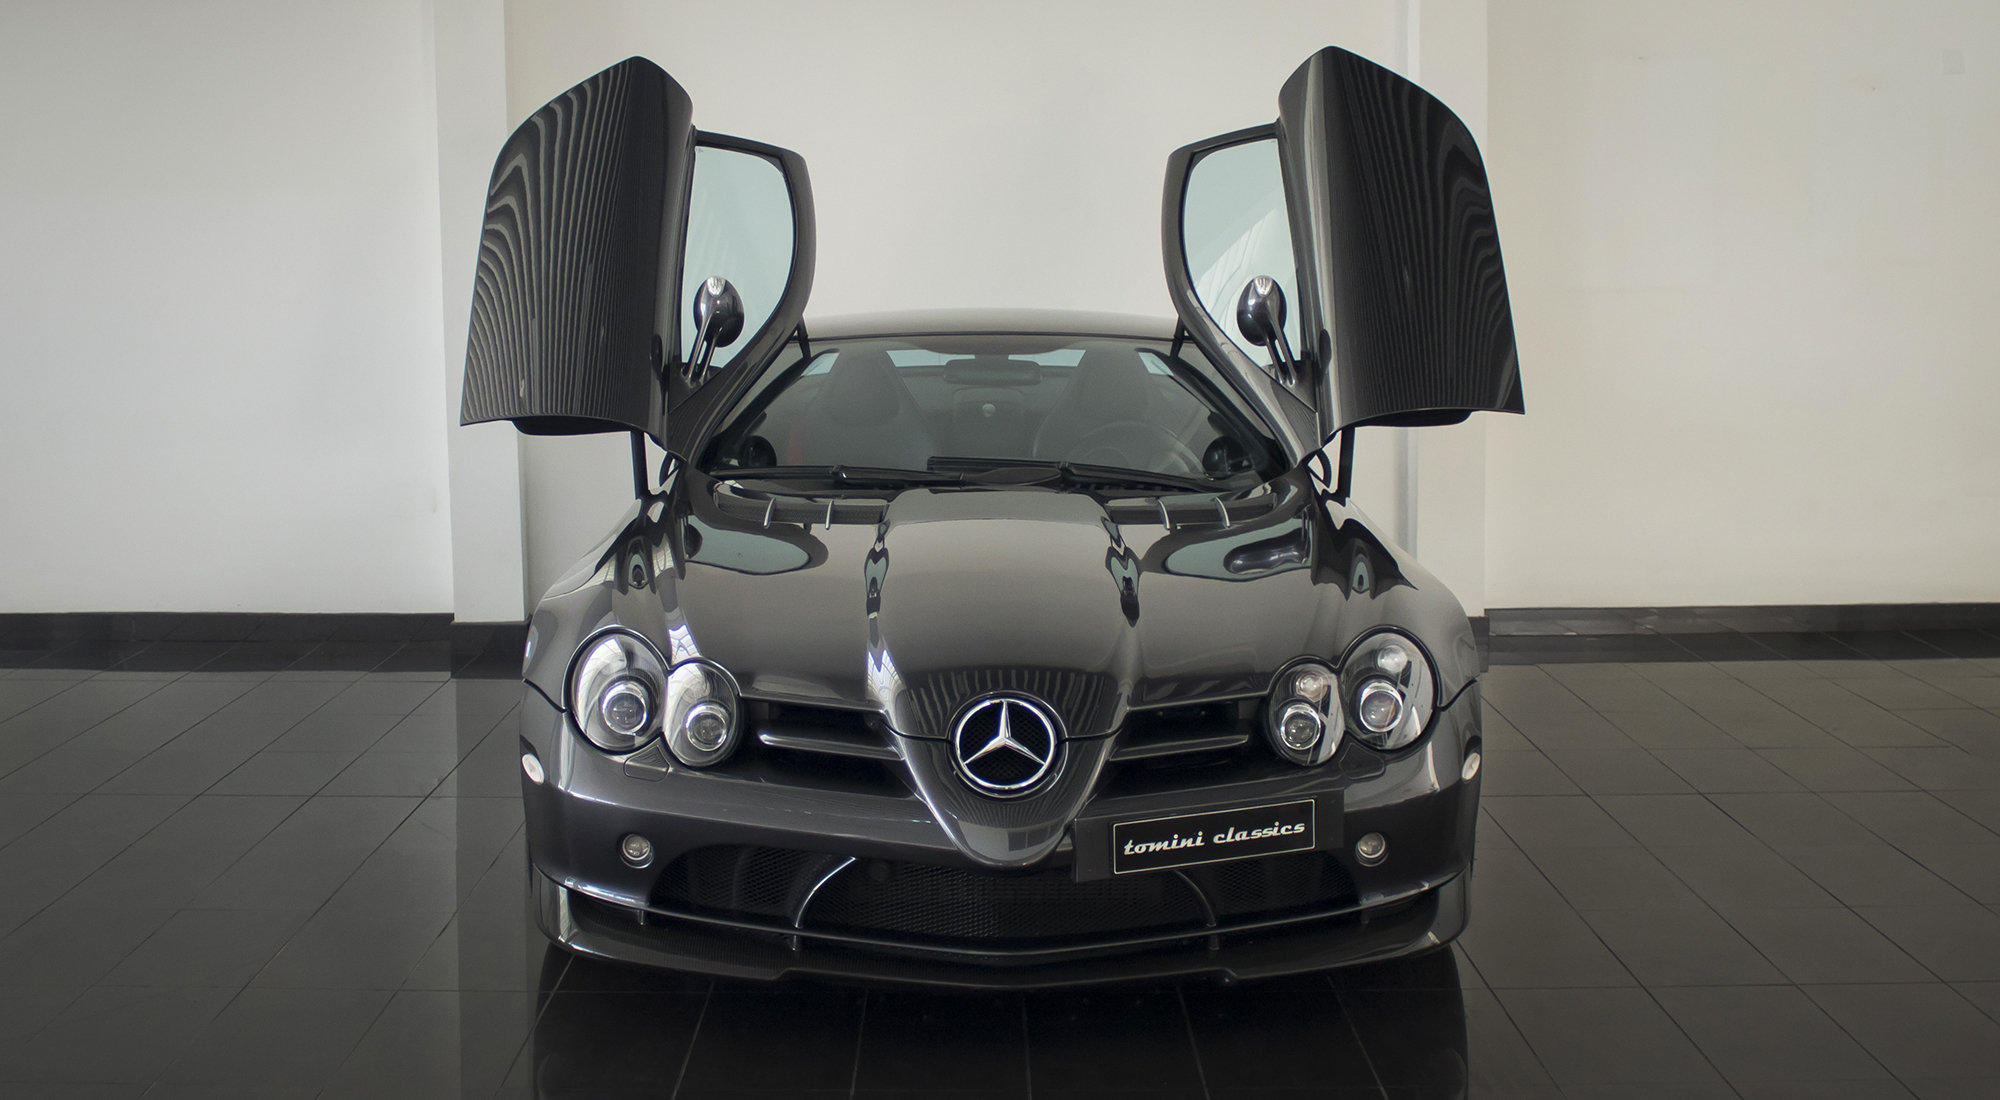 Mercedes-Benz SLR McLaren 722 (2007) For Sale (picture 5 of 6)